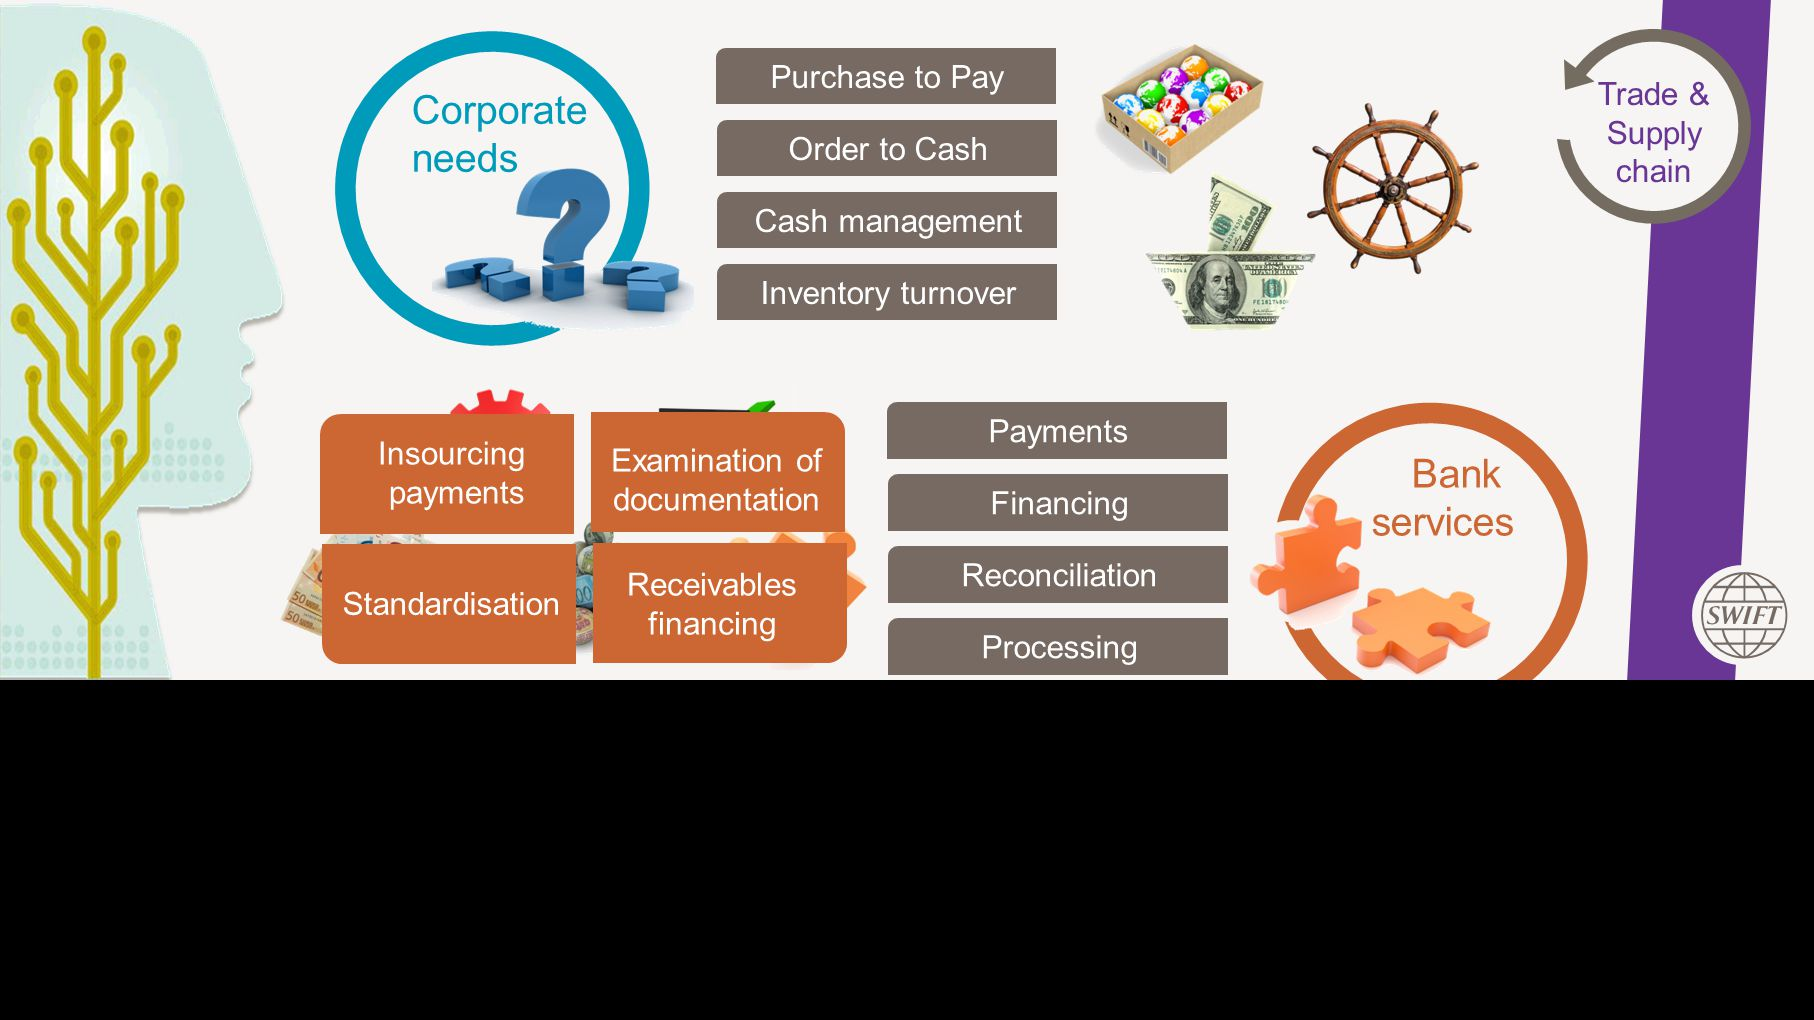 This Area Will Not Be Seen Corporate needs Purchase to Pay Order to Cash Cash management Inventory turnover Bank services Payments Financing Reconciliation Processing Insourcing payments Receivables financing Standardisation Examination of documentation Trade & Supply chain